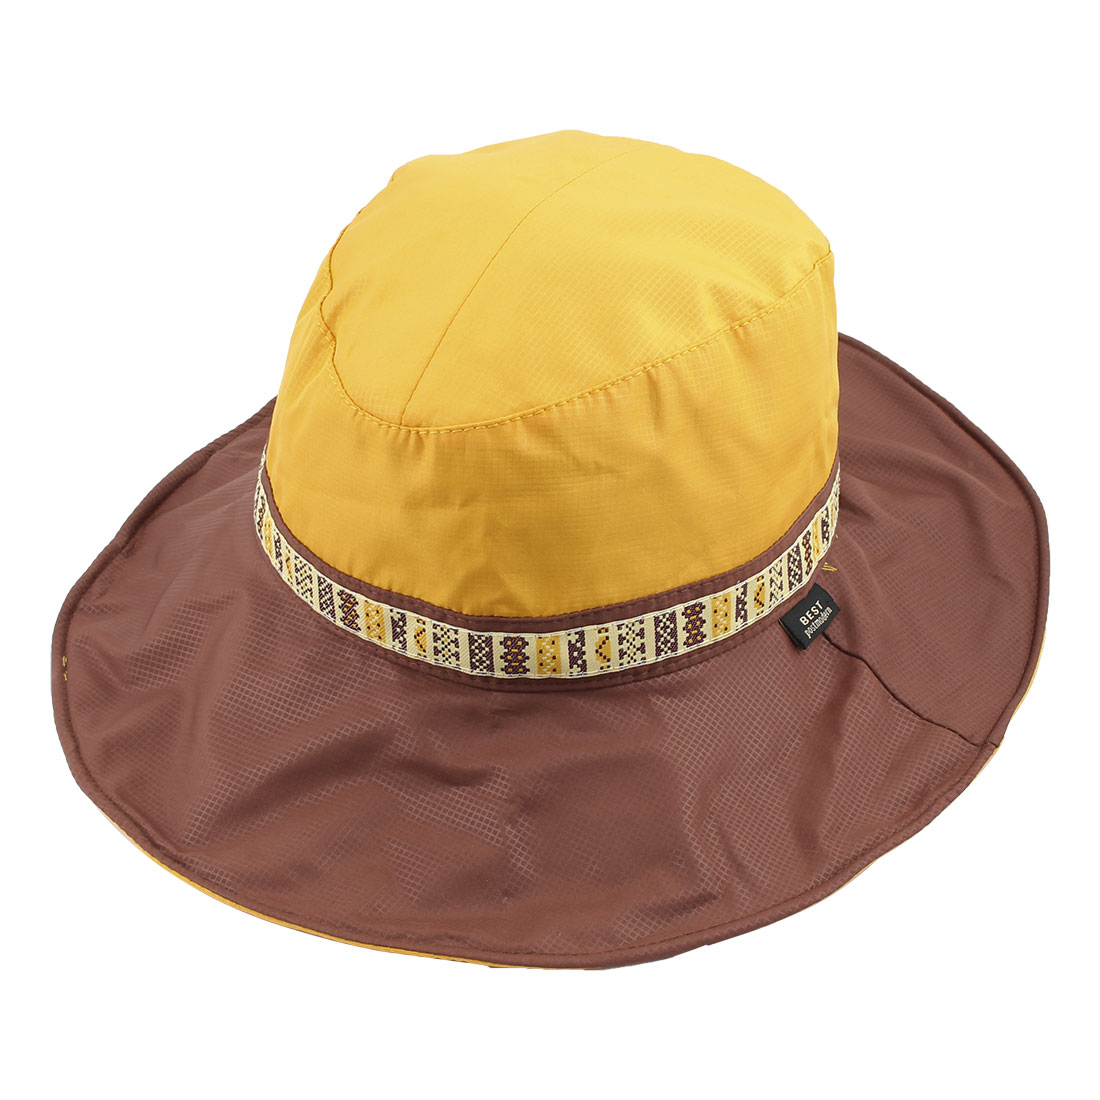 Fisherman Outdoor Fishing Travel Climbing Cycling Adjustable National Style Strap Wide Brim Floppy Cap Bucket Sun Hat Yellow